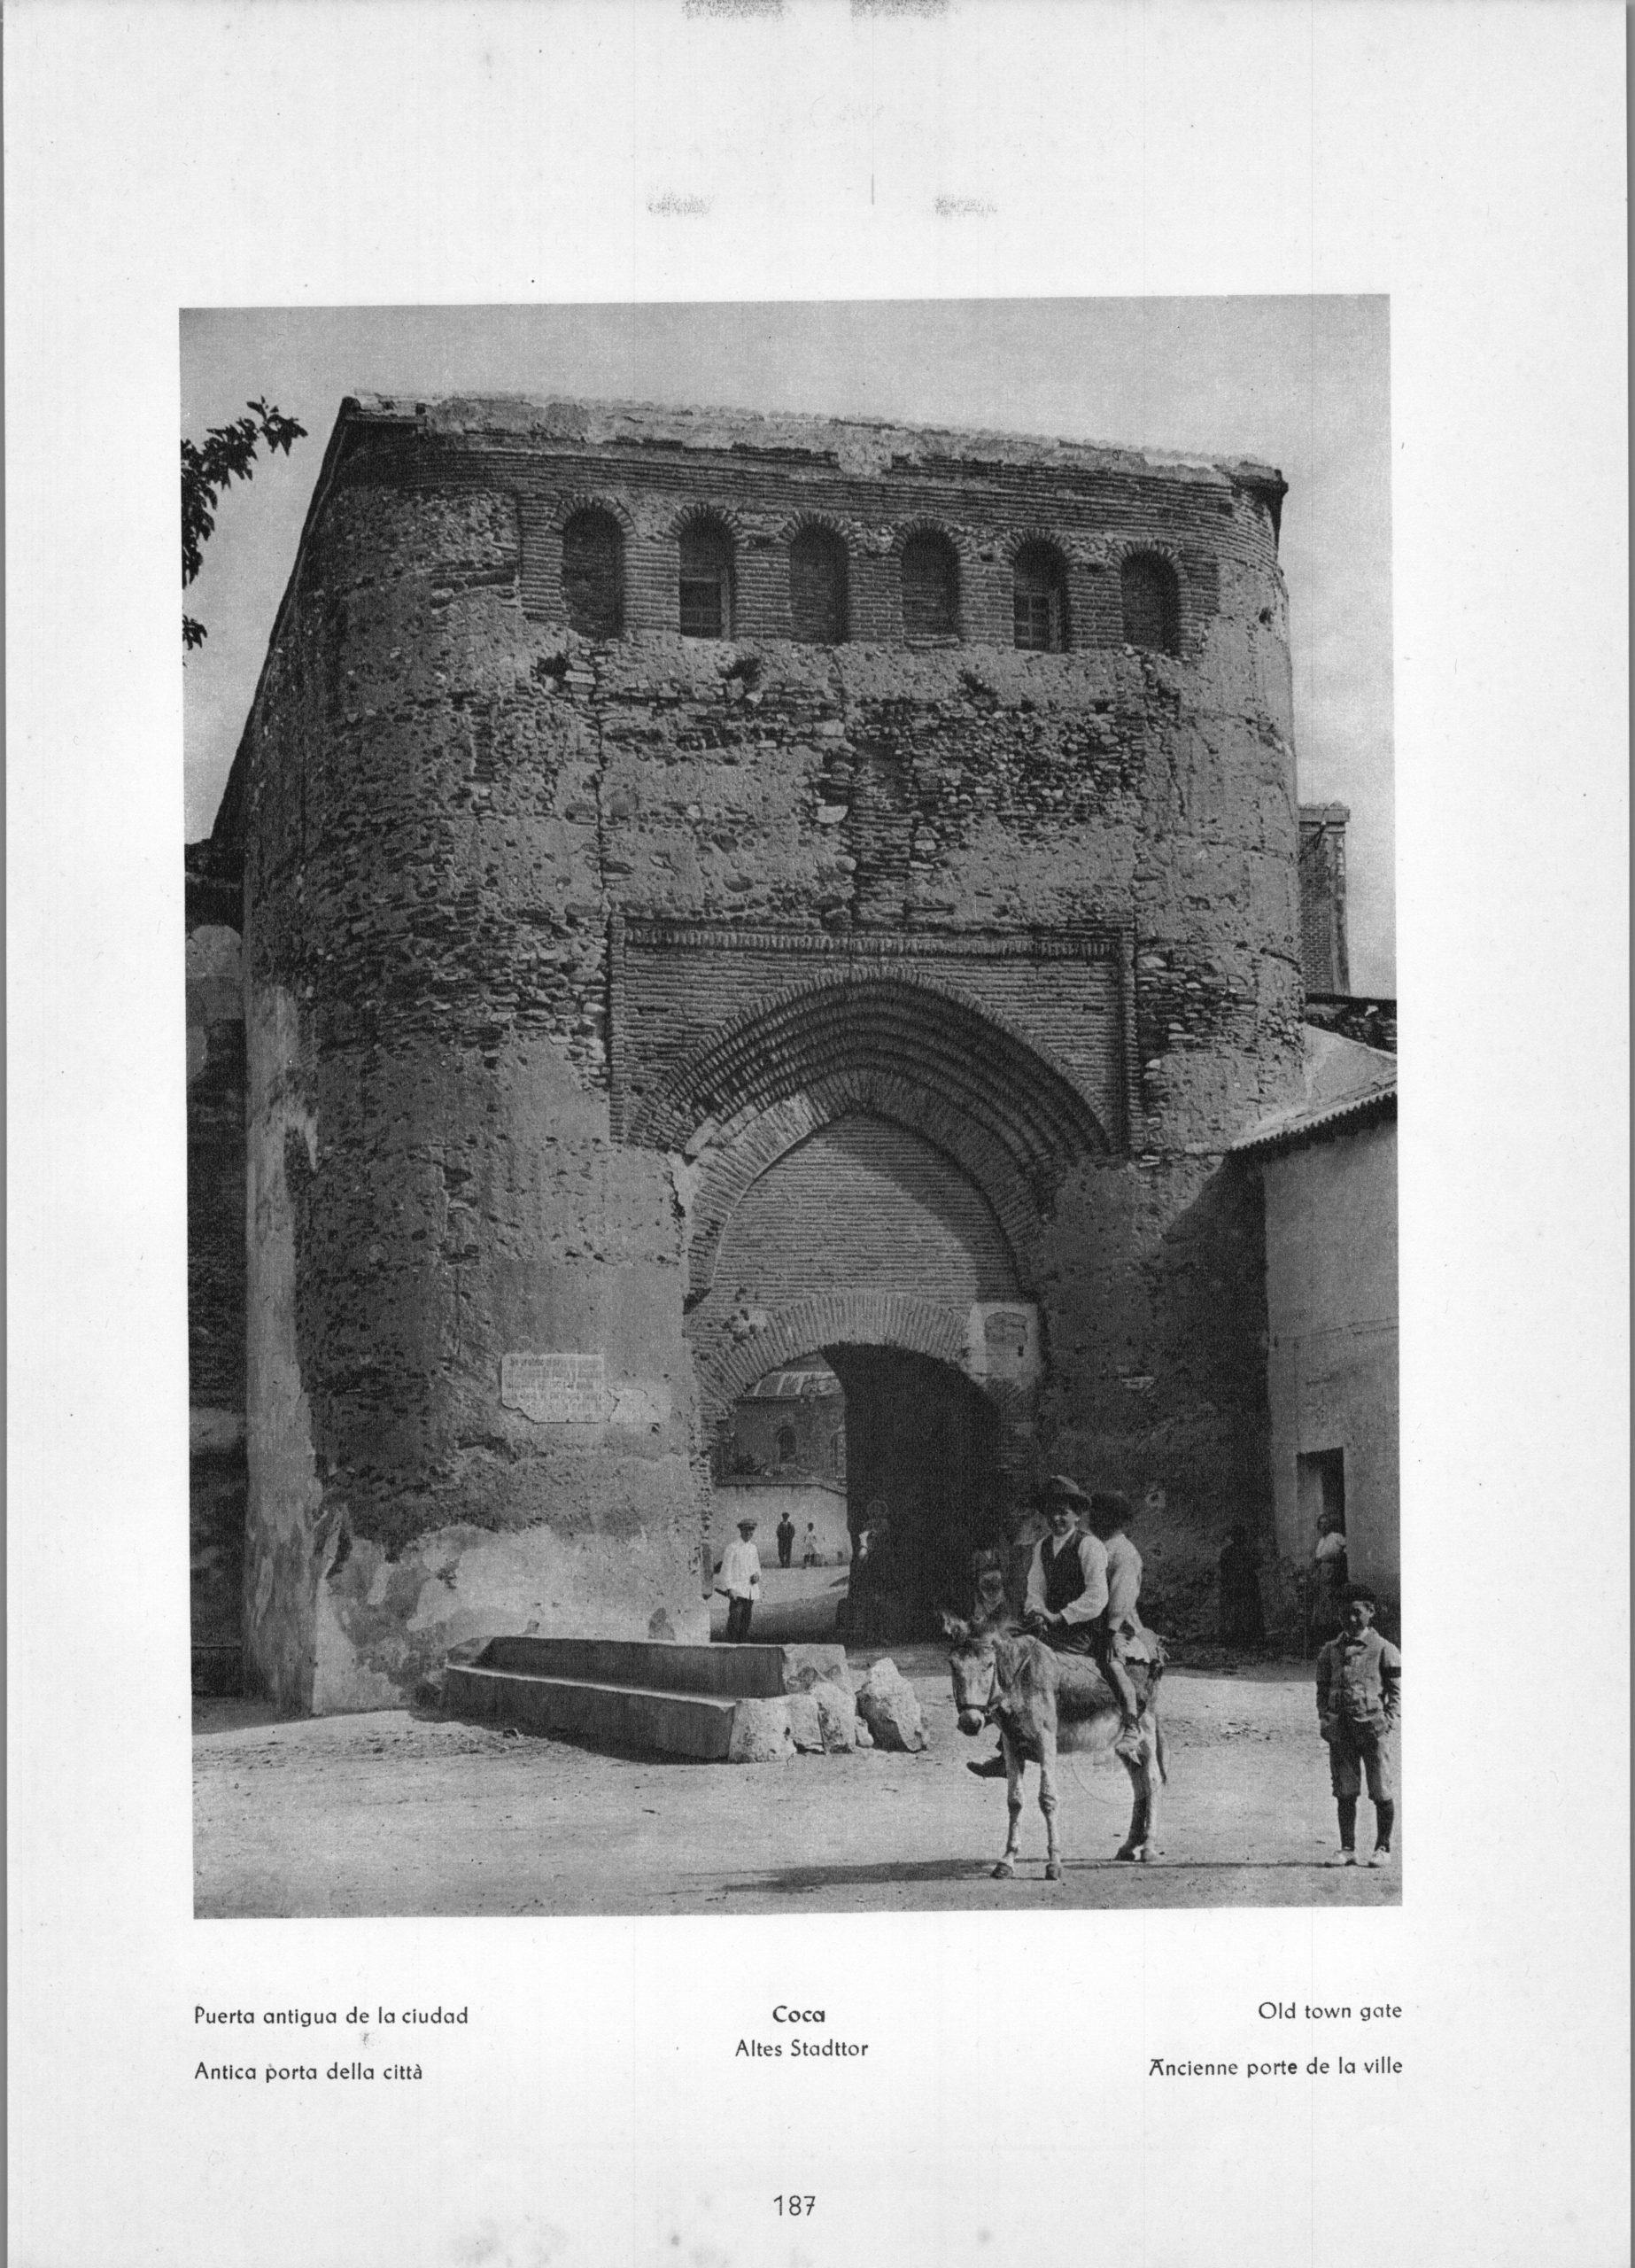 Coca - Old town gate